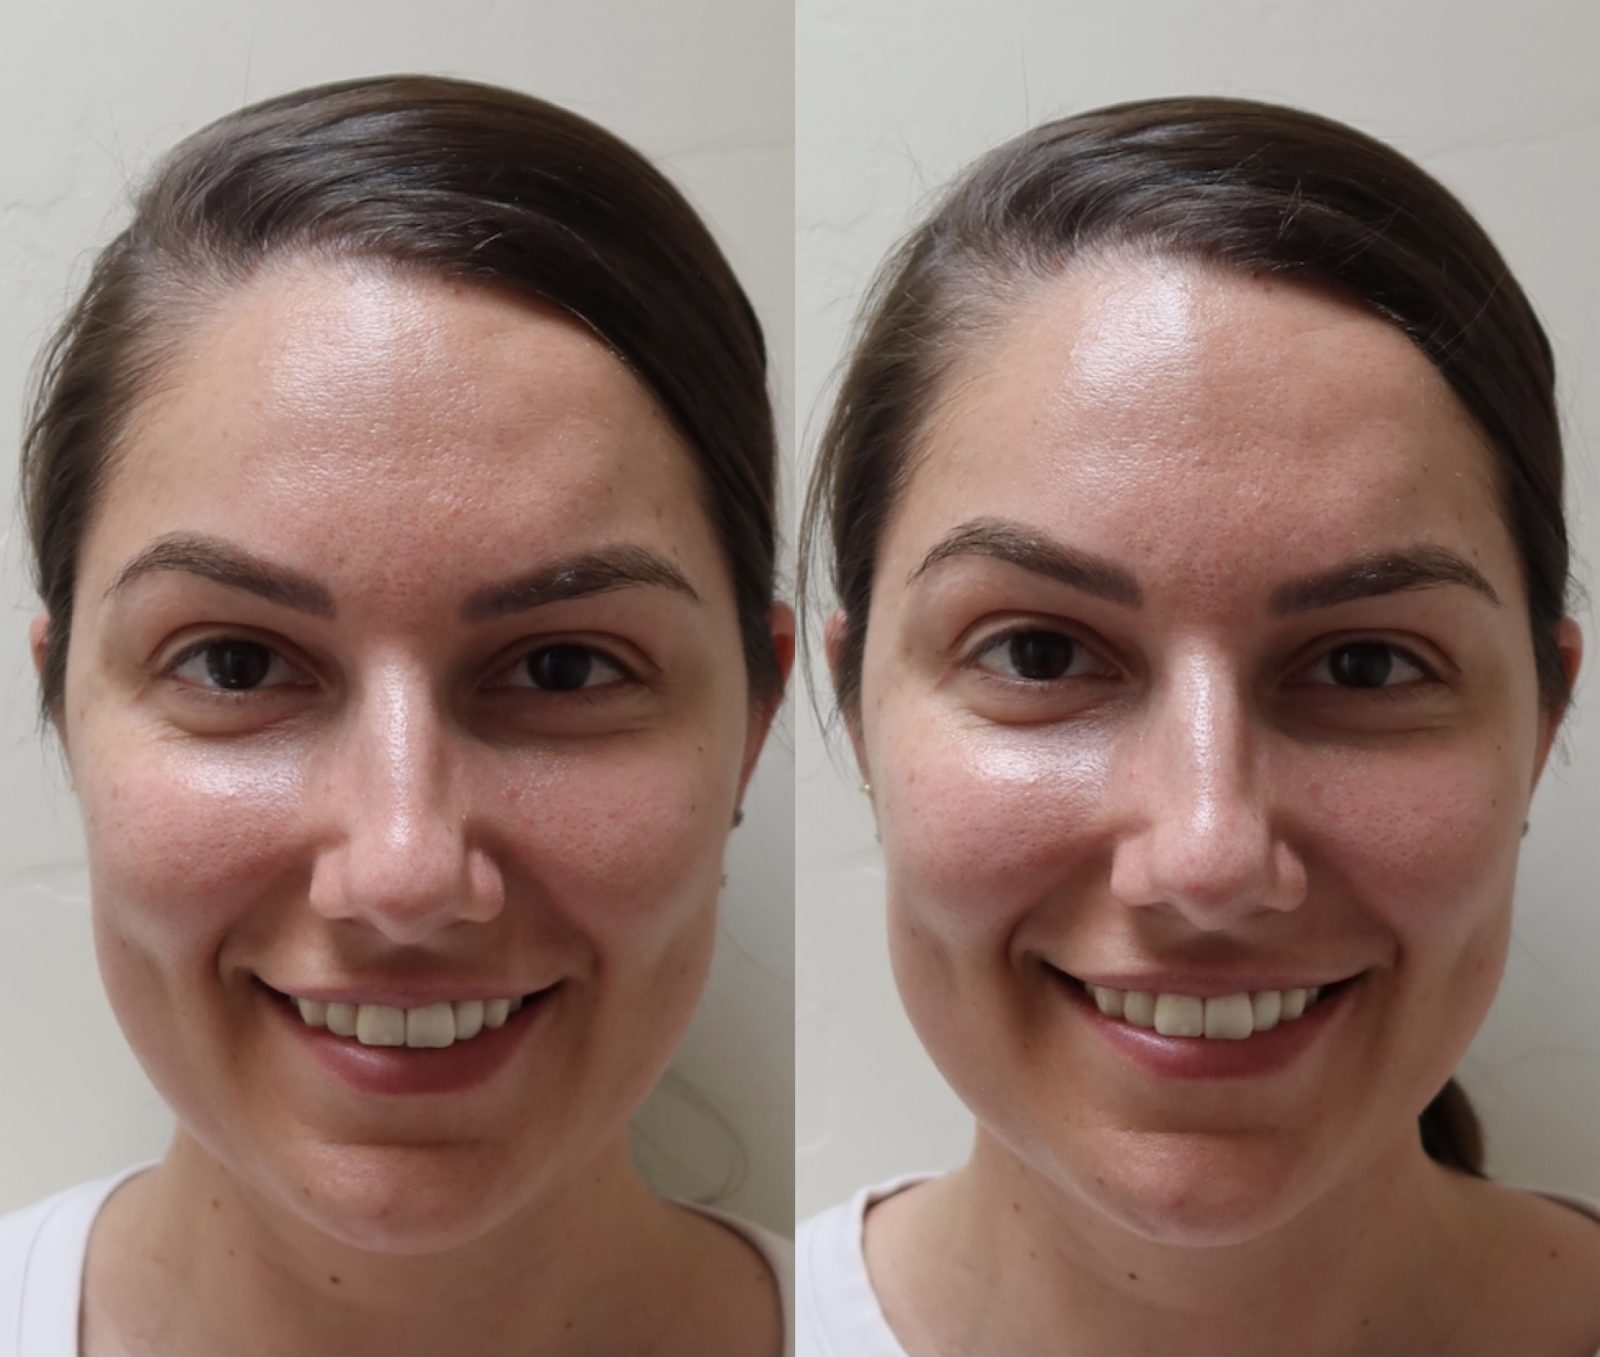 This is a before and after shot of Adaleta Avdic from using FOREO BEAR.